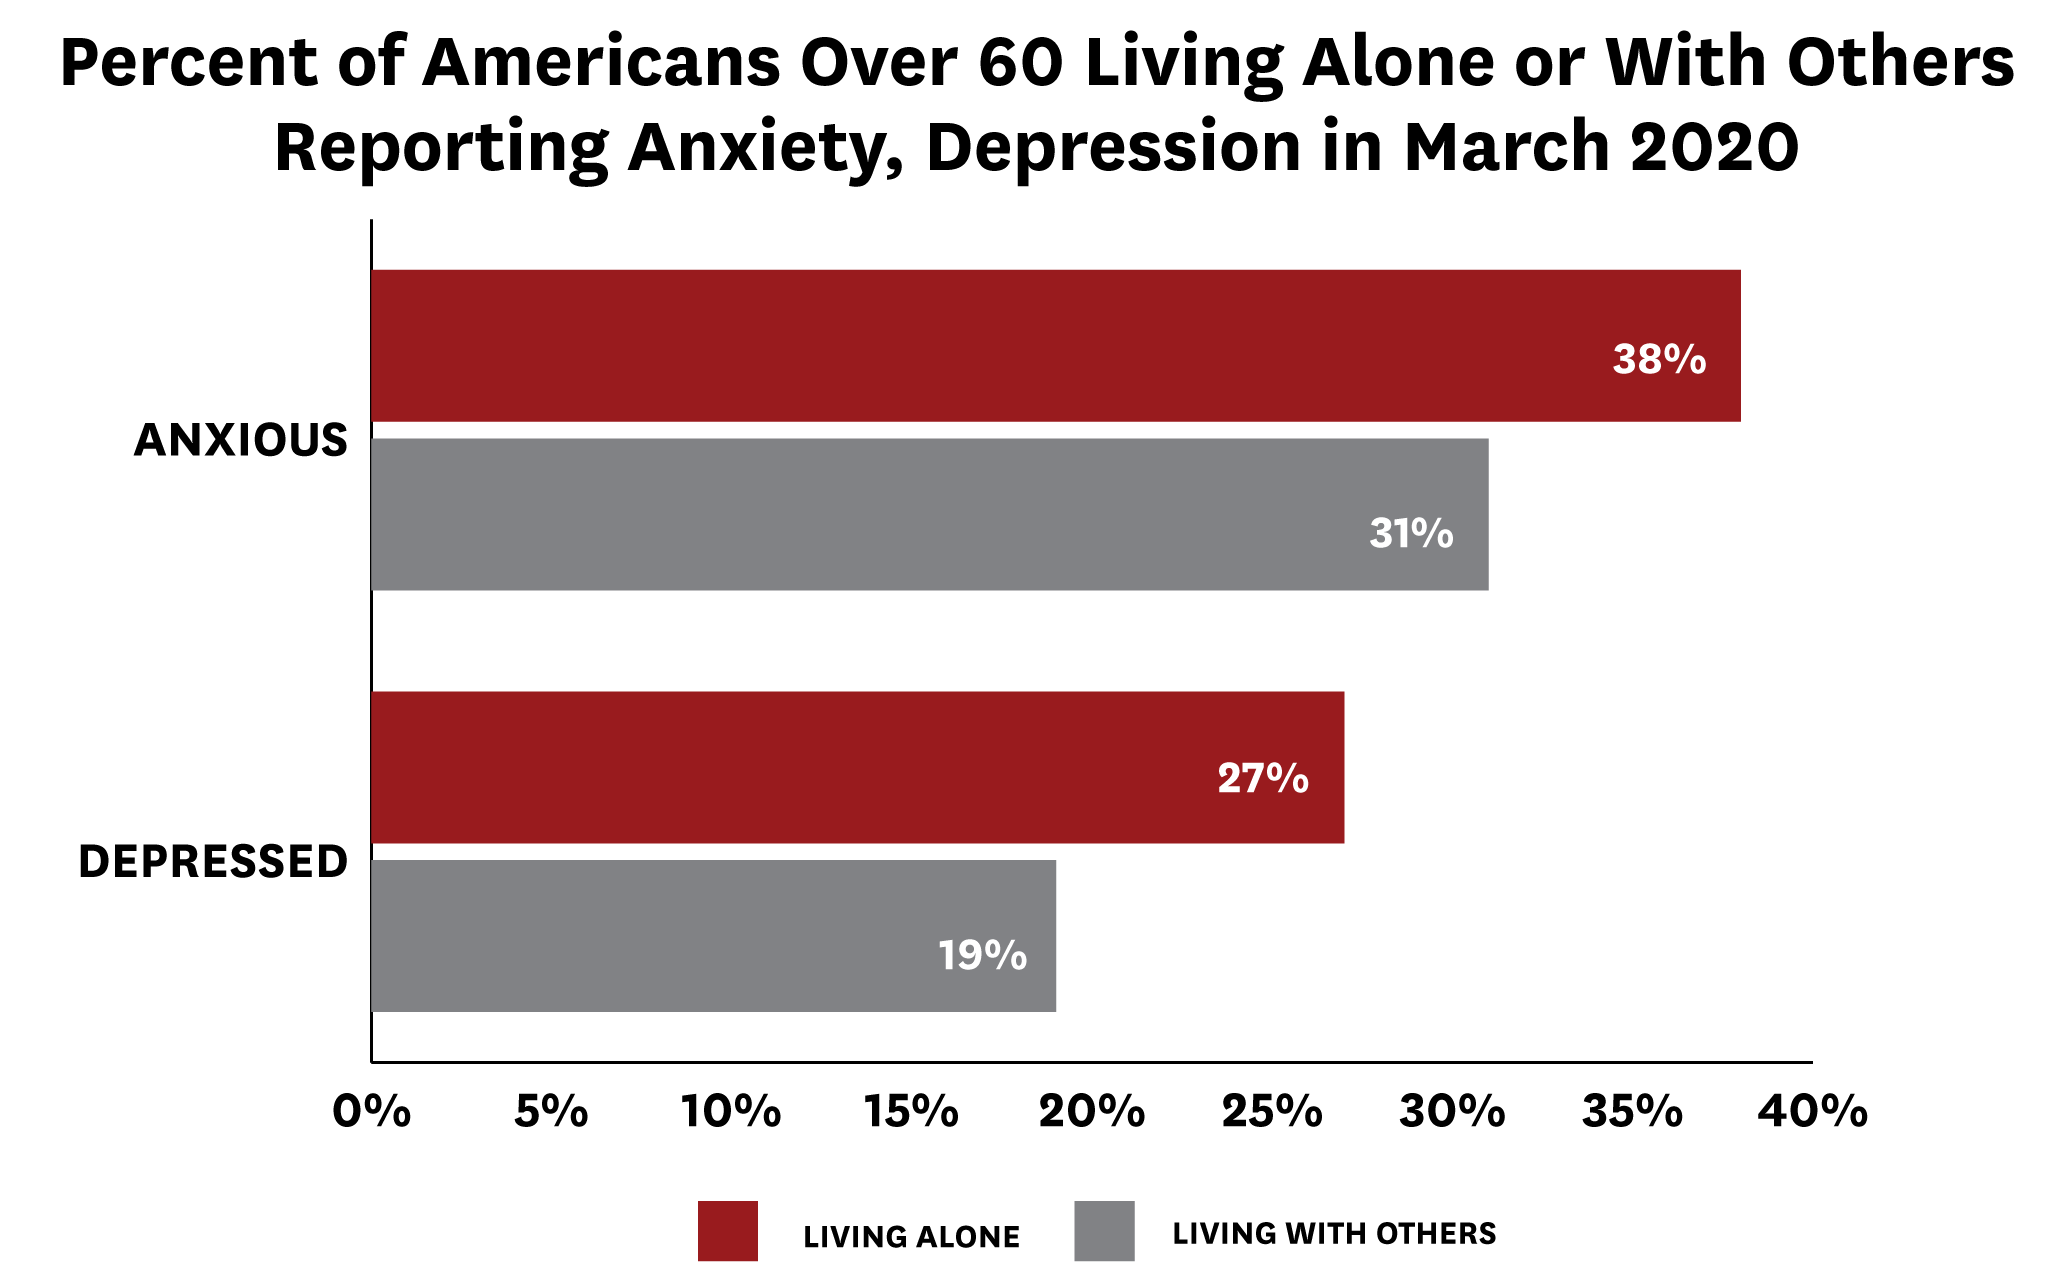 Percent of Americans Living Alone or With Others Reporting Anxiety, Depression